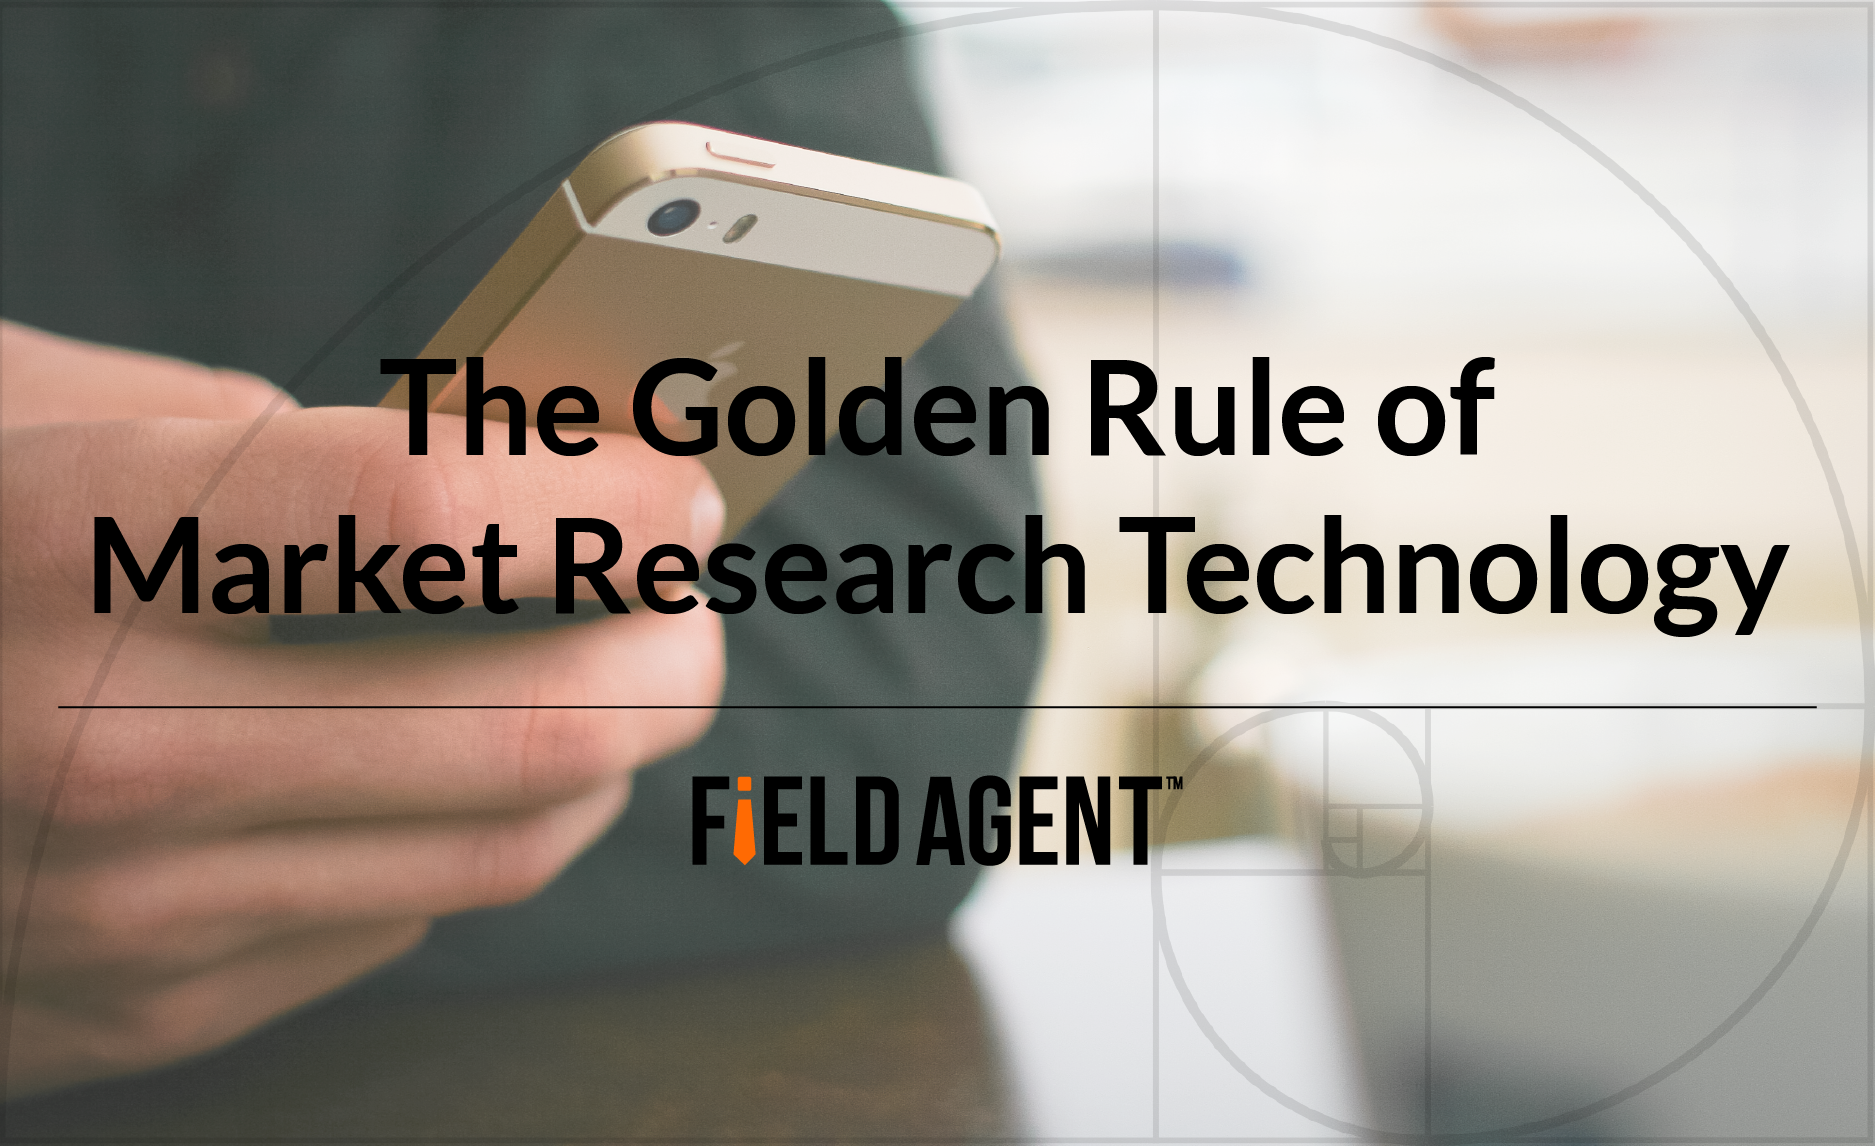 The Golden Rule of Market Research Technology